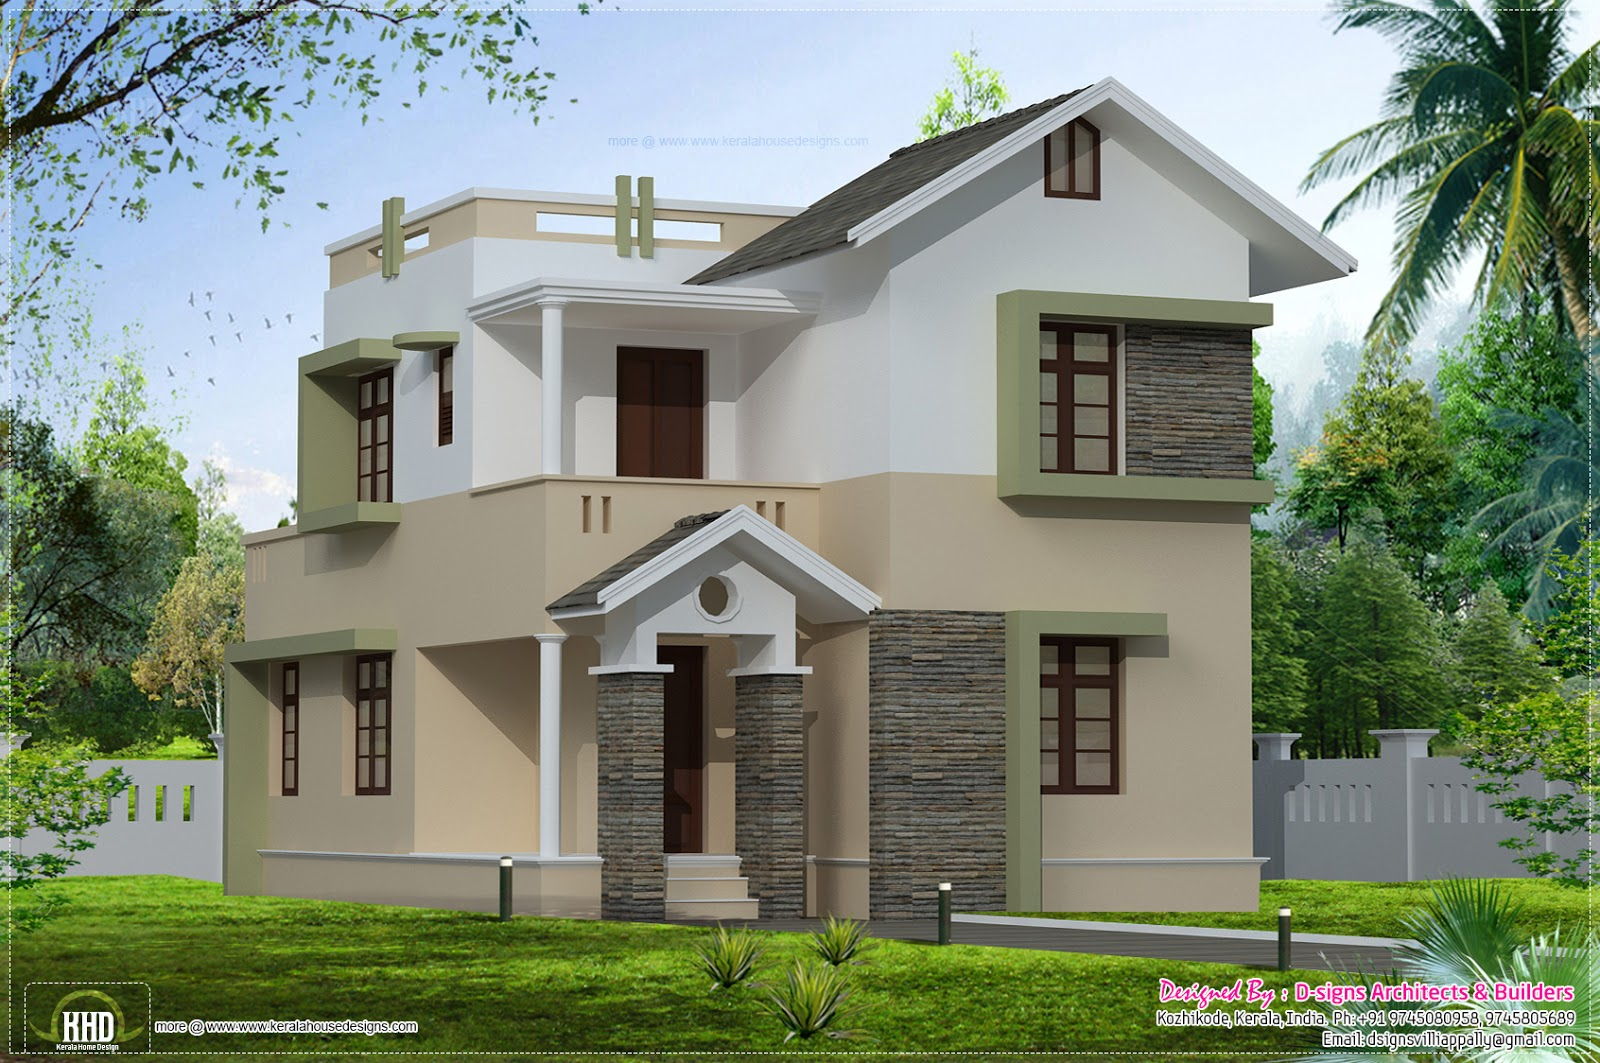 1400 Square Feet Small Villa Elevation Kerala Home Design And